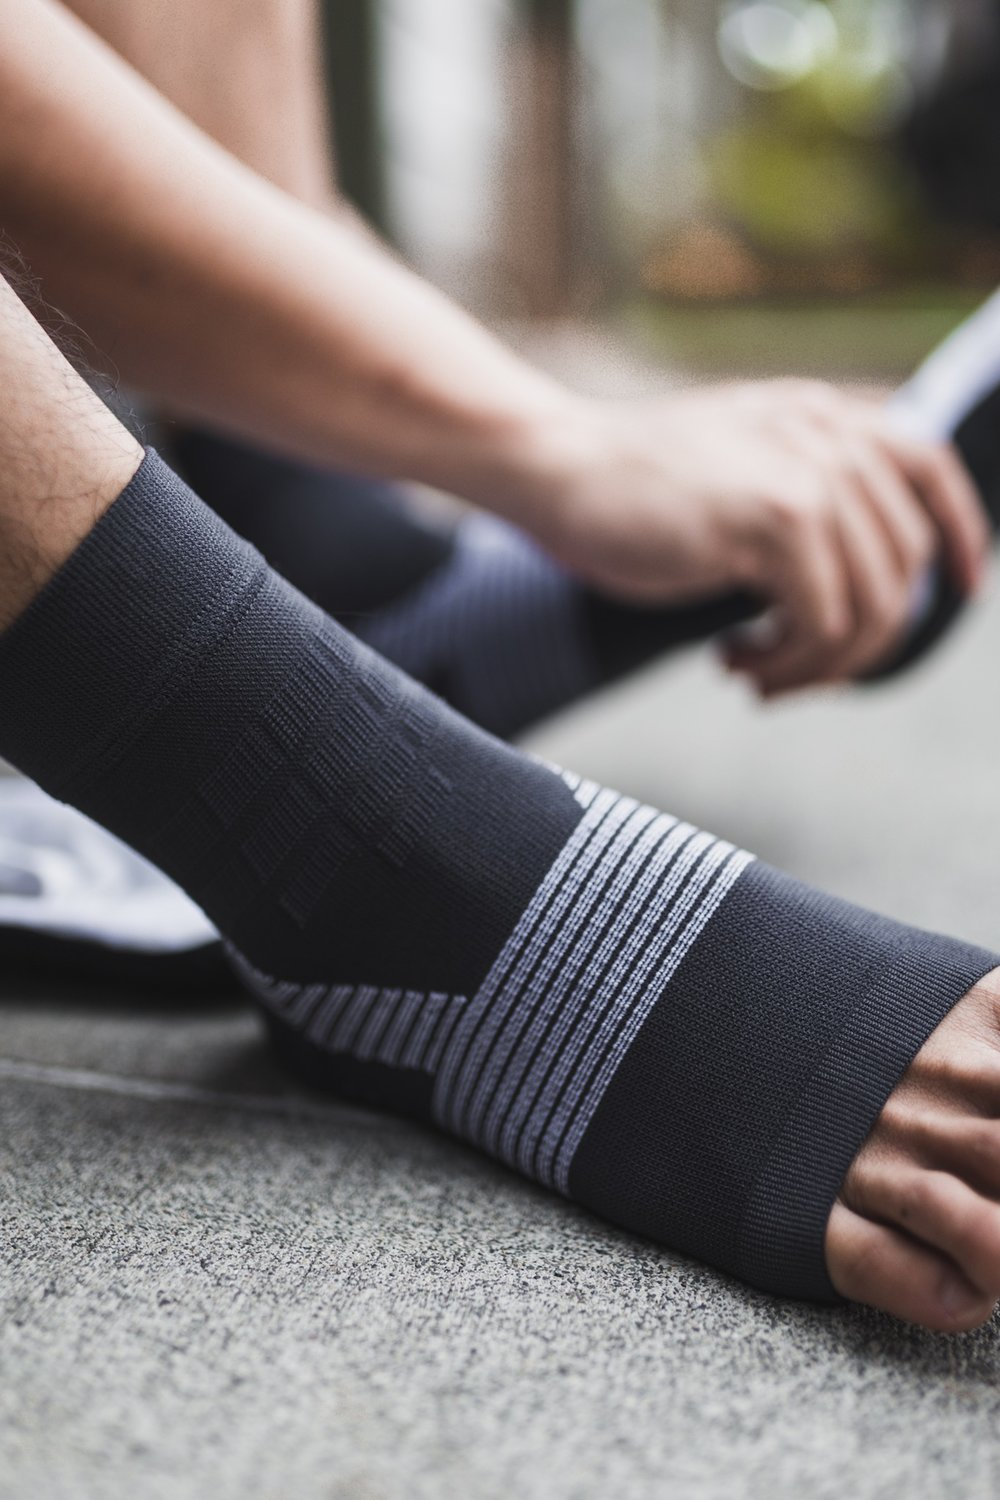 Medical Benefits - As diabetes grows each year in our society Proprio6 products bring a unique advantage over traditional compression hosiery. Proprio6 improve gait, posture, blood circulation whilst helping to prevent venous pooling and improving balance in diabetics.